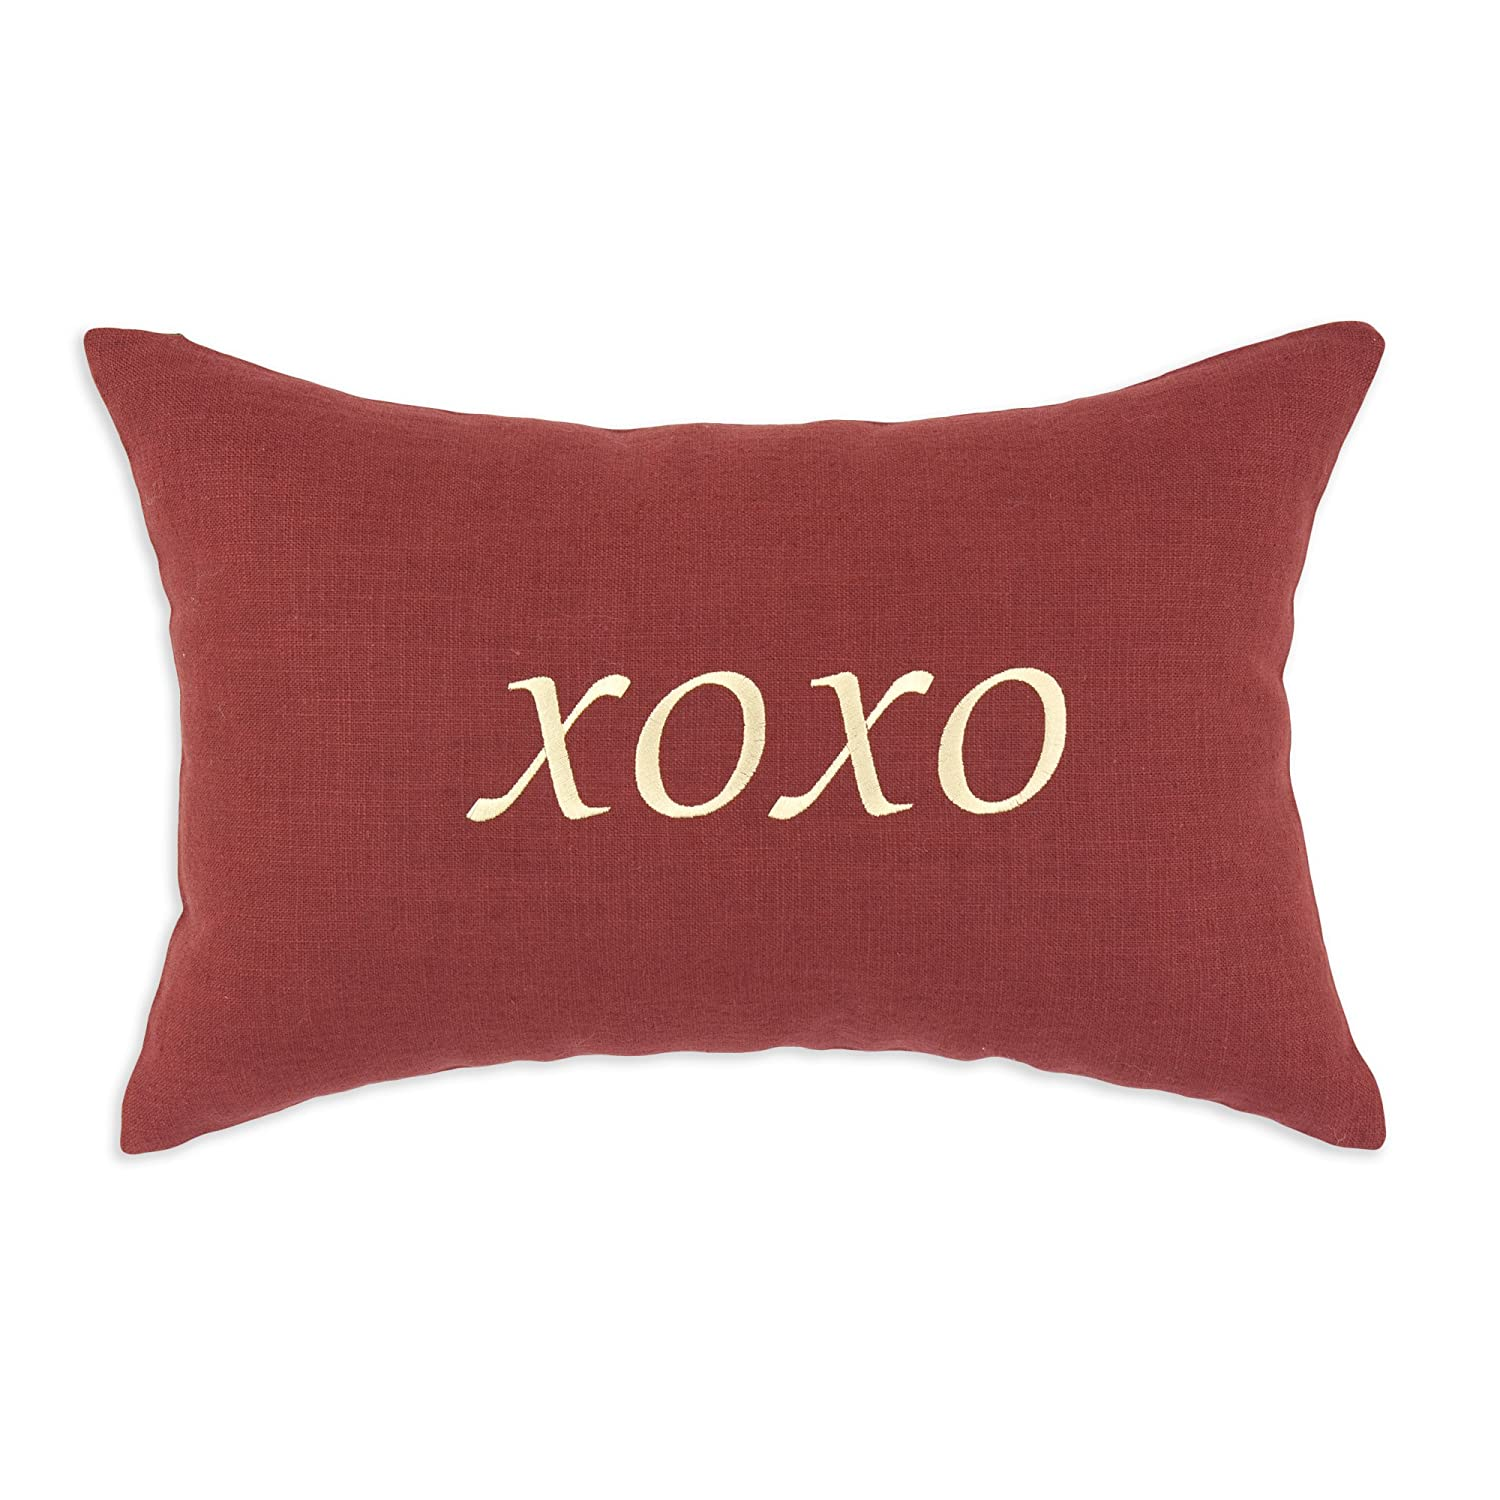 Plastic Pillows Valentines Day Xoxo Pillows Valentine S